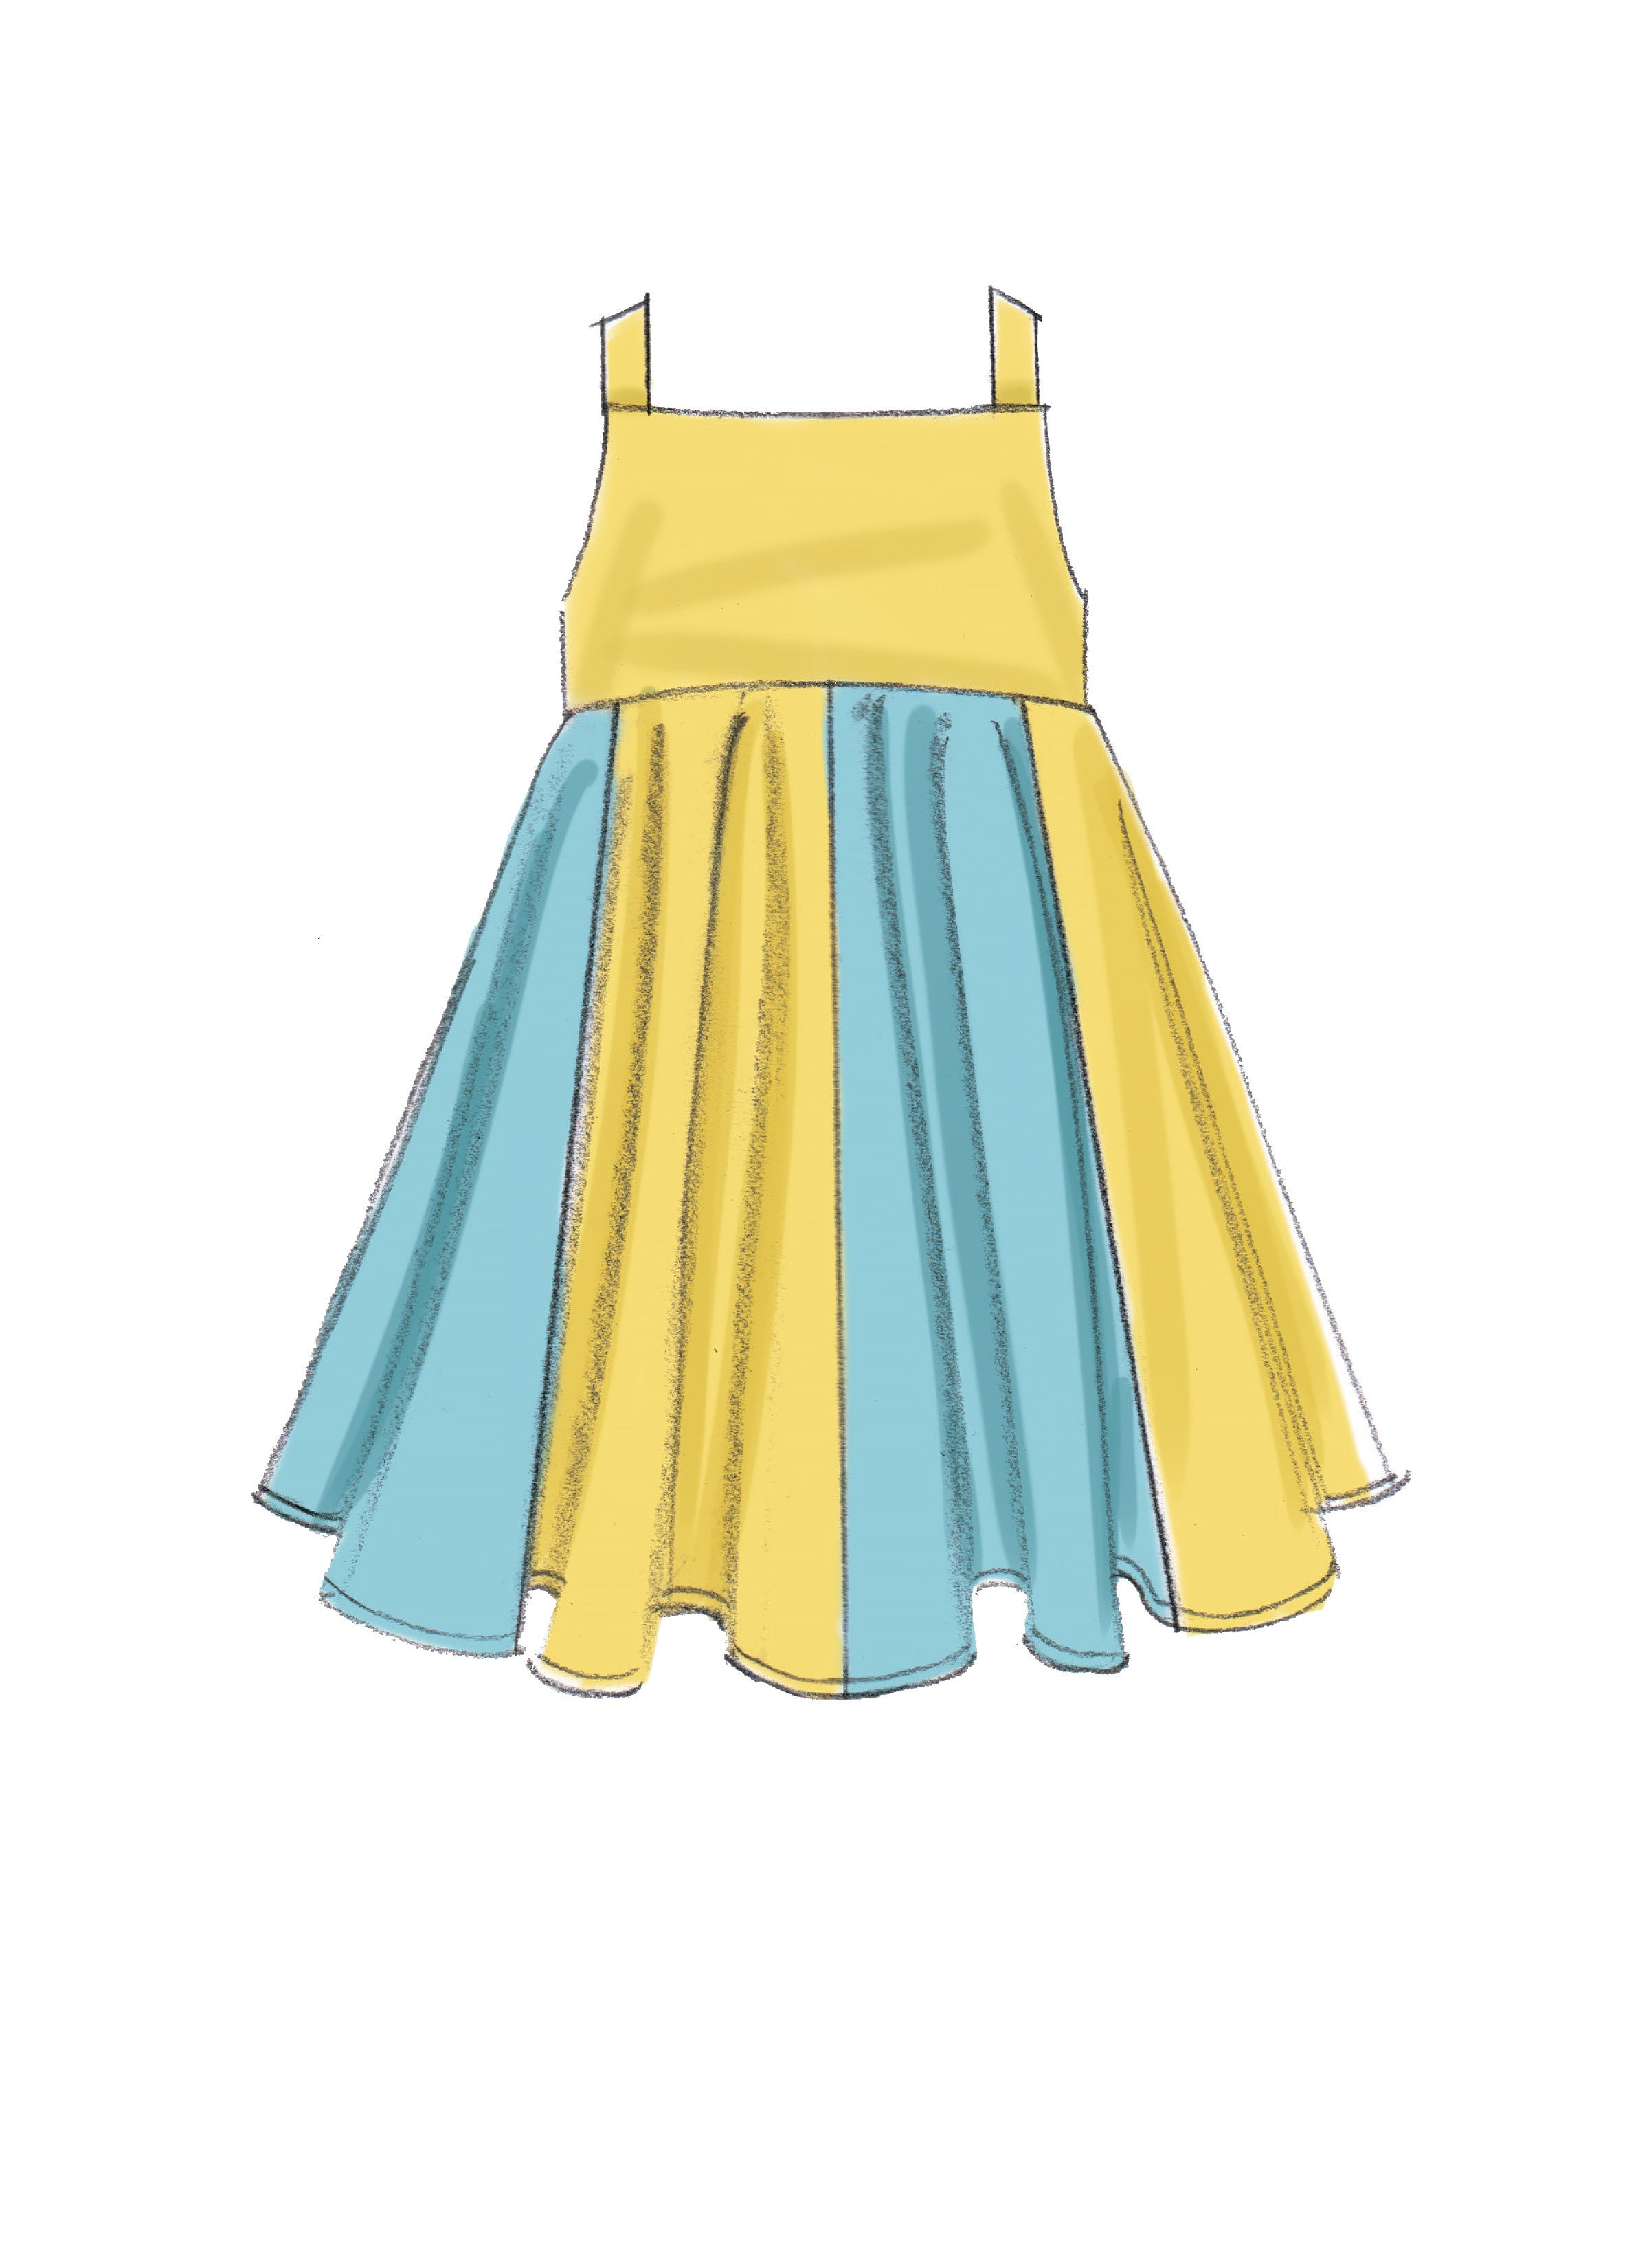 M7587 Girls Dresses with Square neck and skirt variations